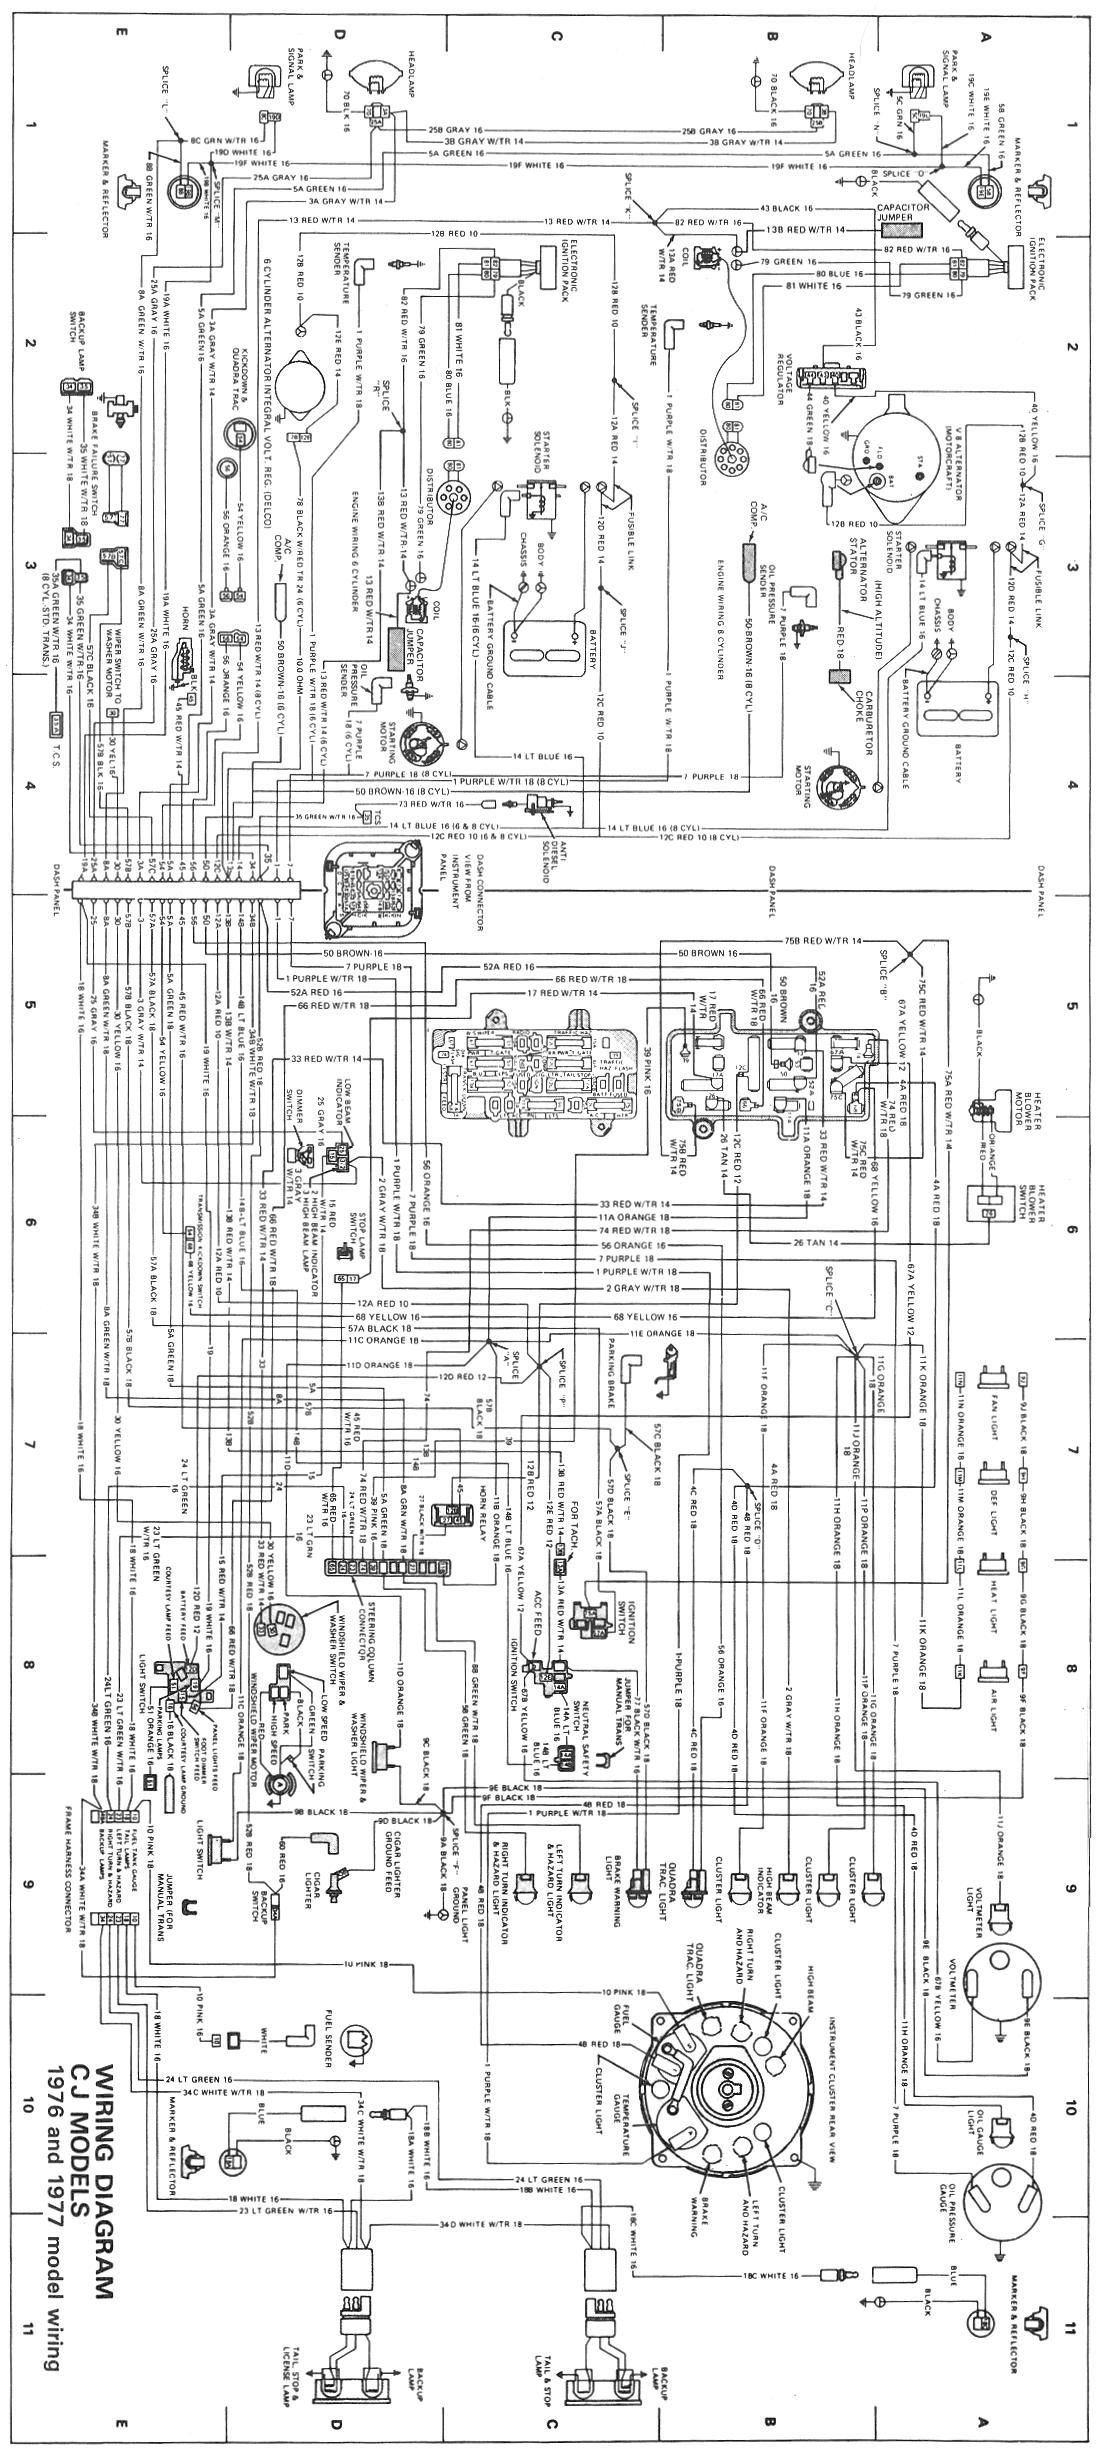 8d25ded6e3673519e155875e09844e5e cj wiring diagram 1976 1977 jpg 1,100�2,459 pixels 1976 jeep cj5 75 jeep cj5 wiring diagram at virtualis.co